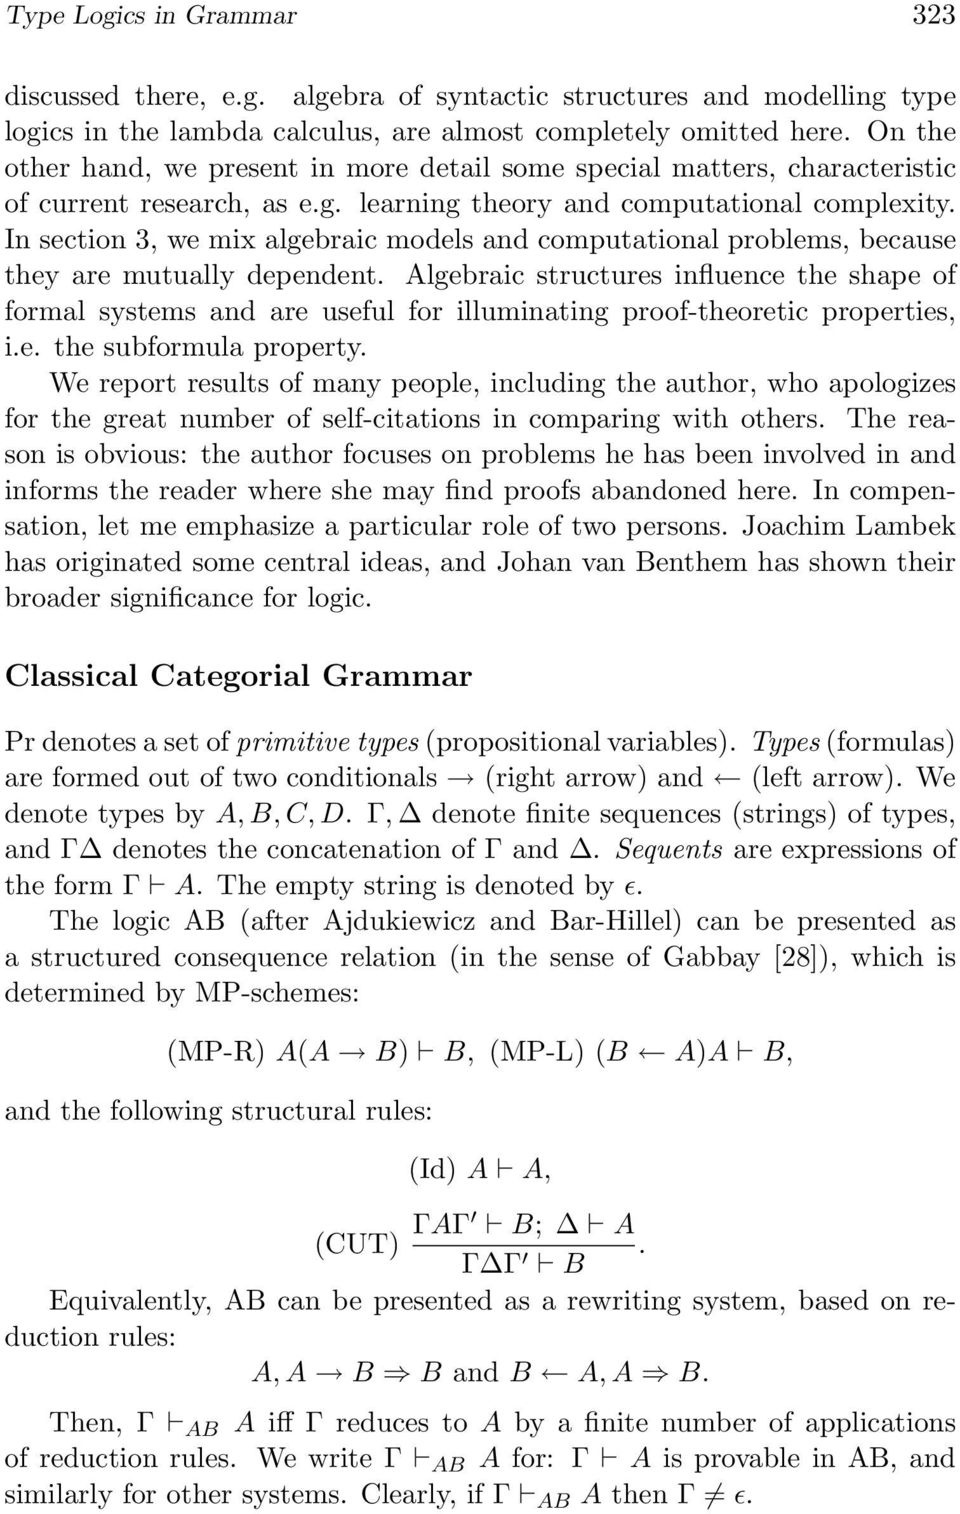 In section 3, we mix algebraic models and computational problems, because they are mutually dependent.